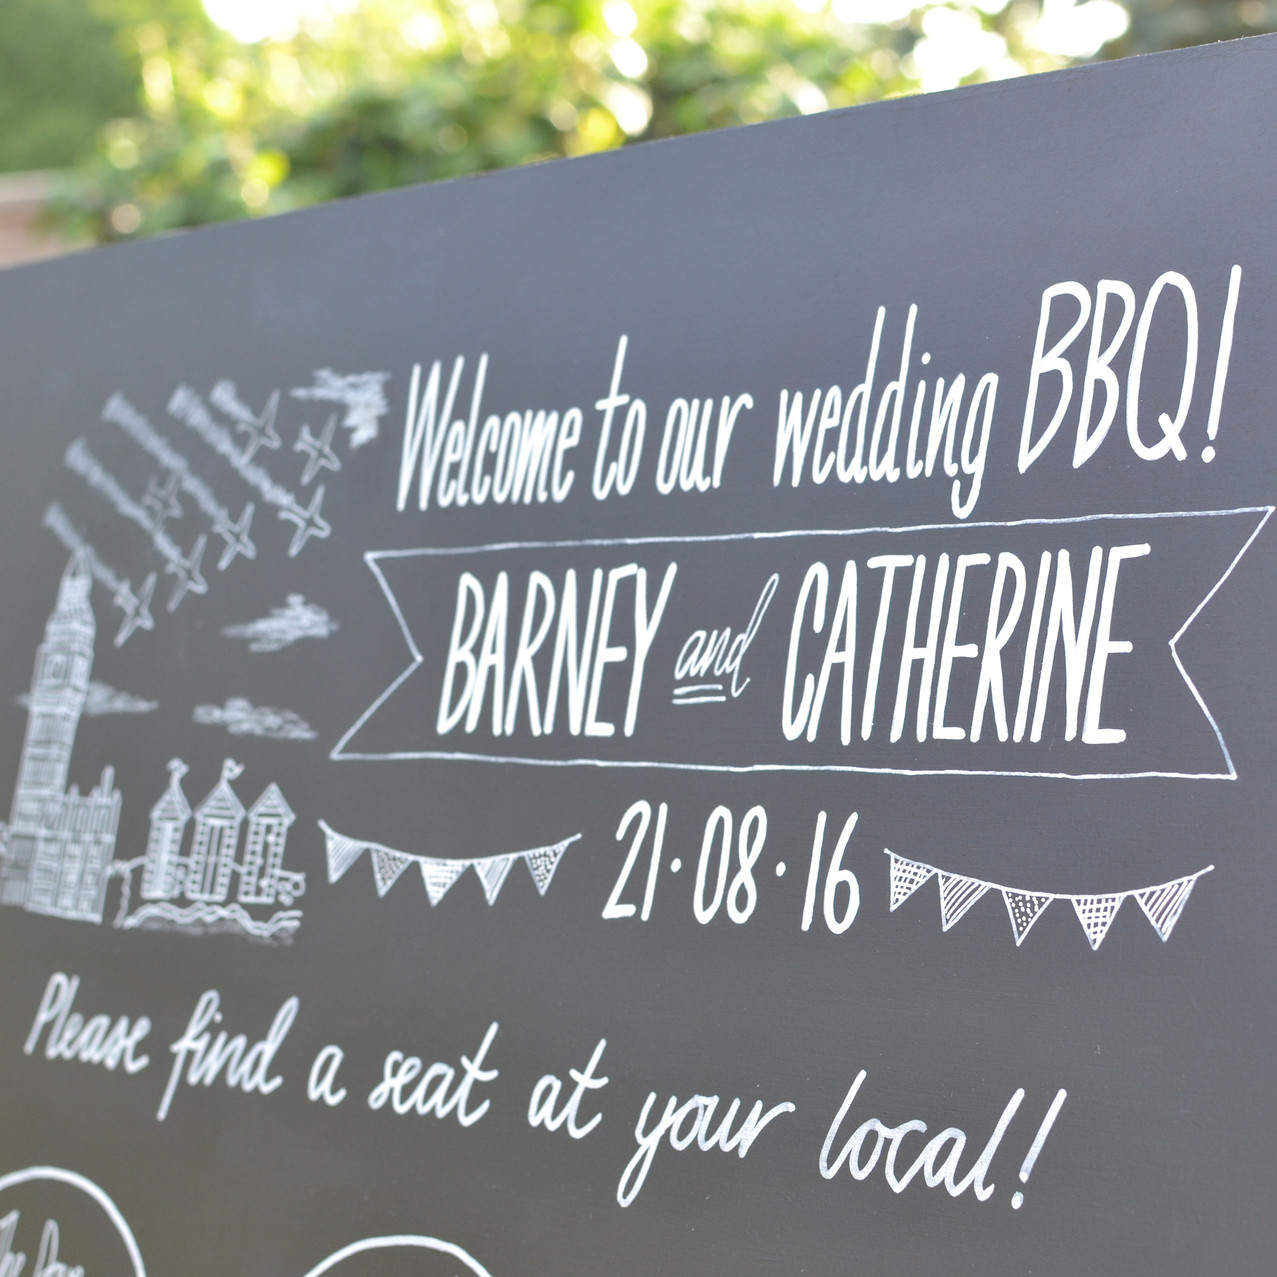 Barney & Catherine Table Plan - August 2016 (7)